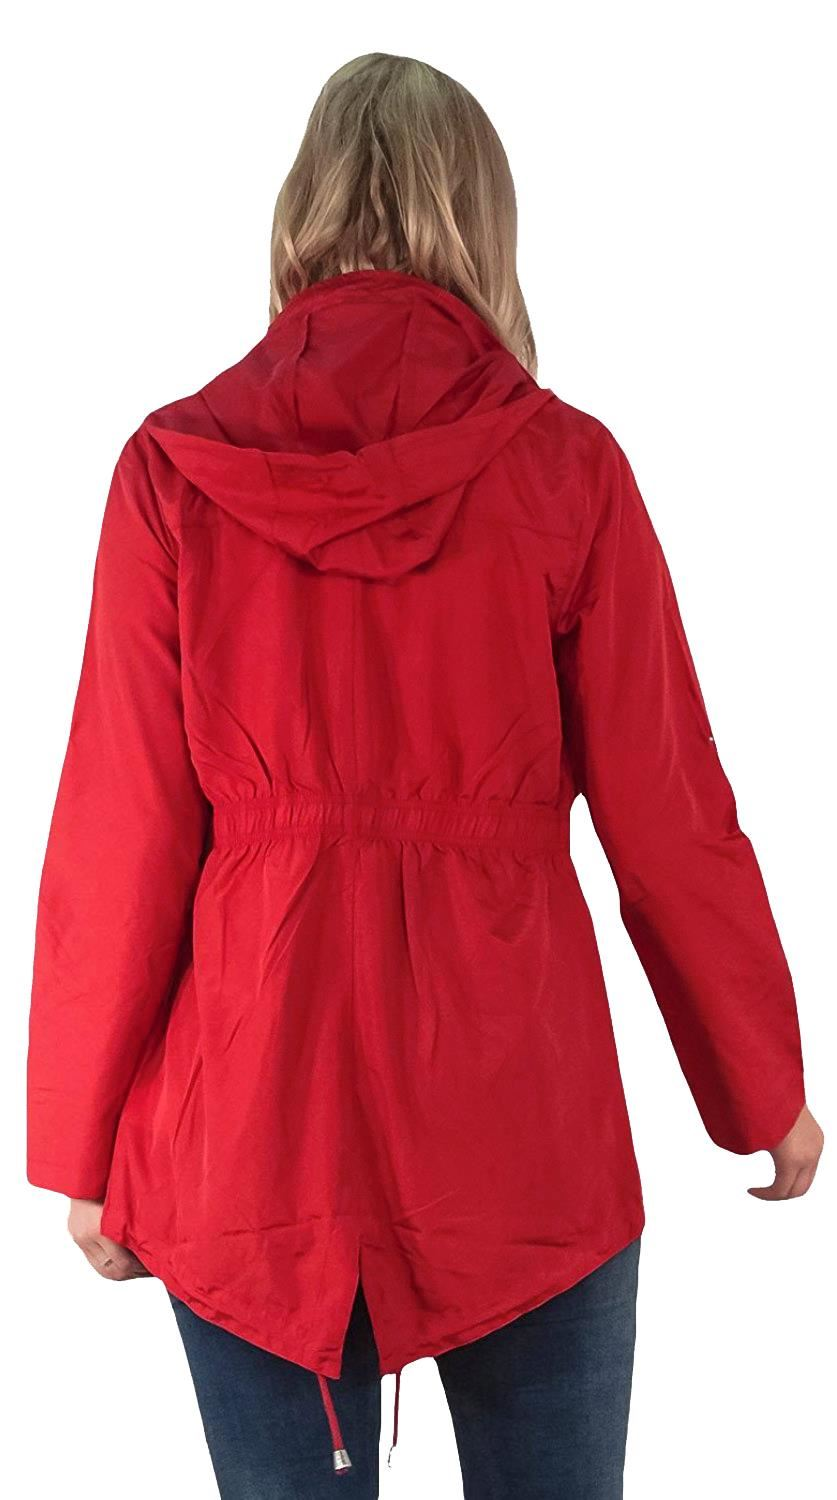 Ladies-Plus-Size-Plain-Printed-Parka-Hooded-Fishtail-Polyester-Mac-Raincoats thumbnail 15